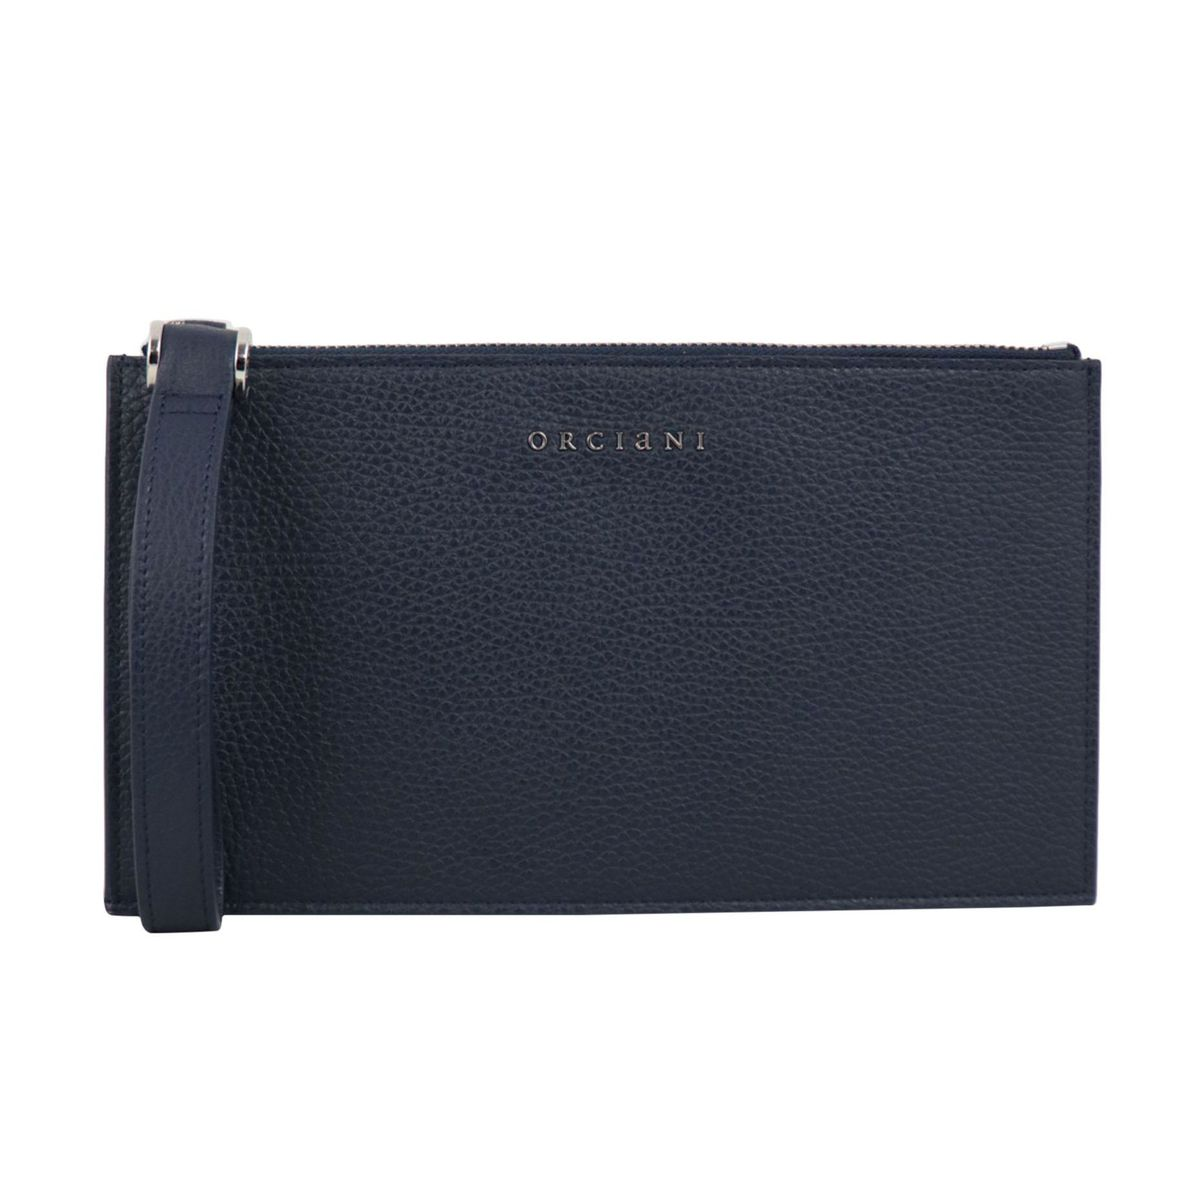 Micron leather clutch bag Navy Orciani